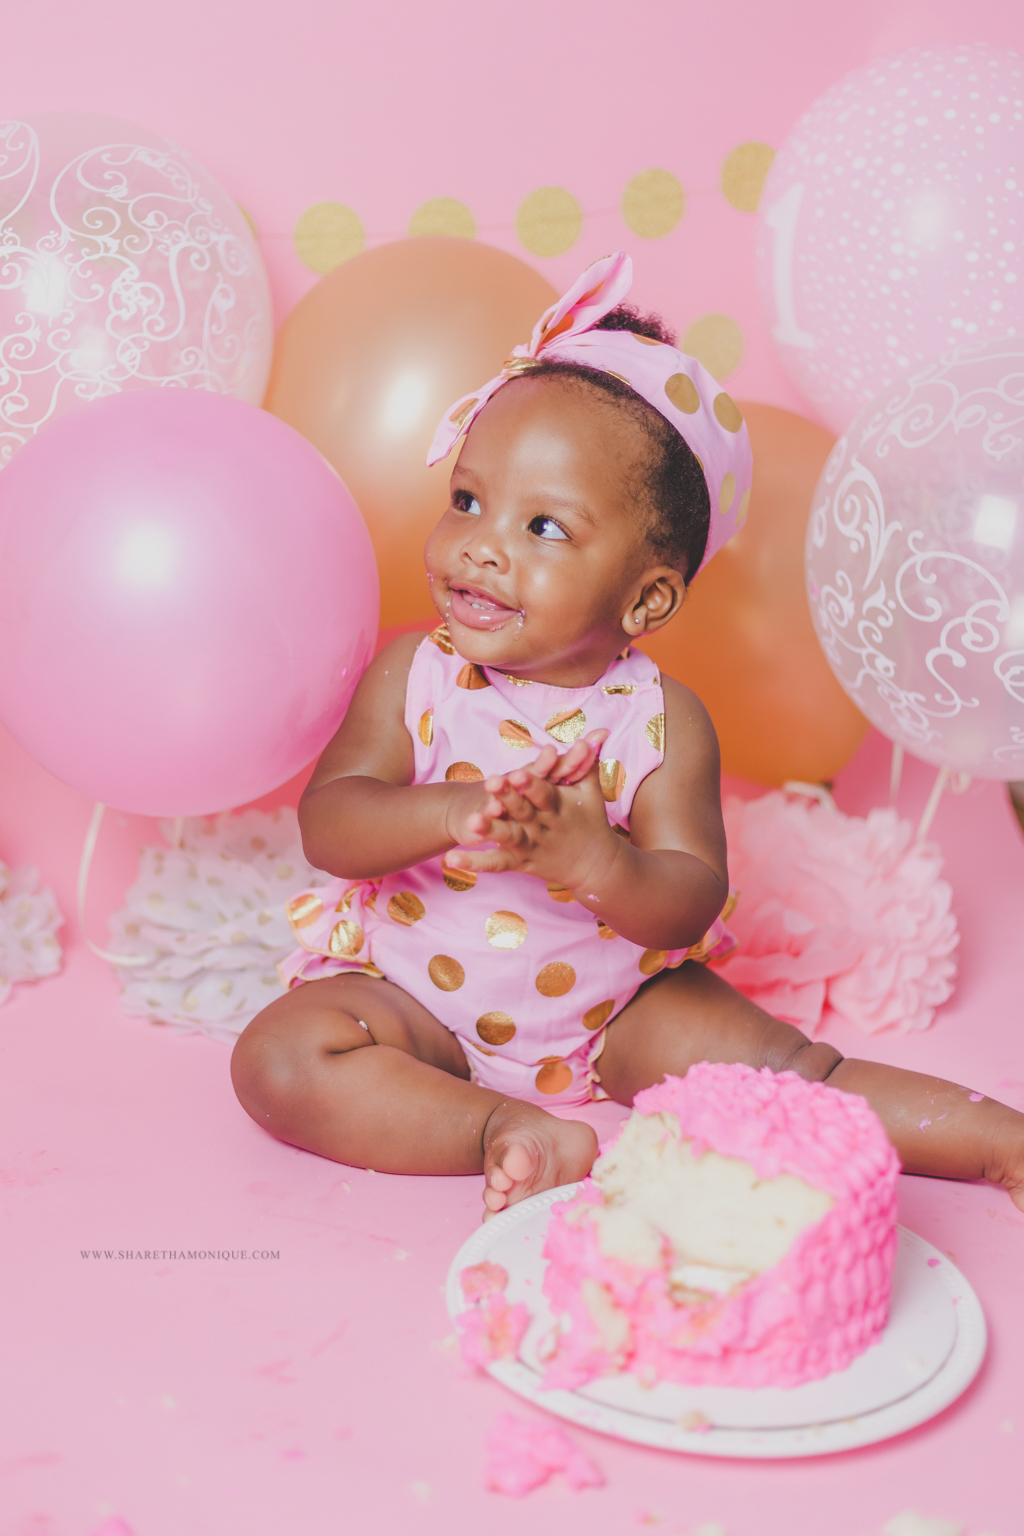 Charlotte Baby Cake Smash - One Year Birthday-12.jpg